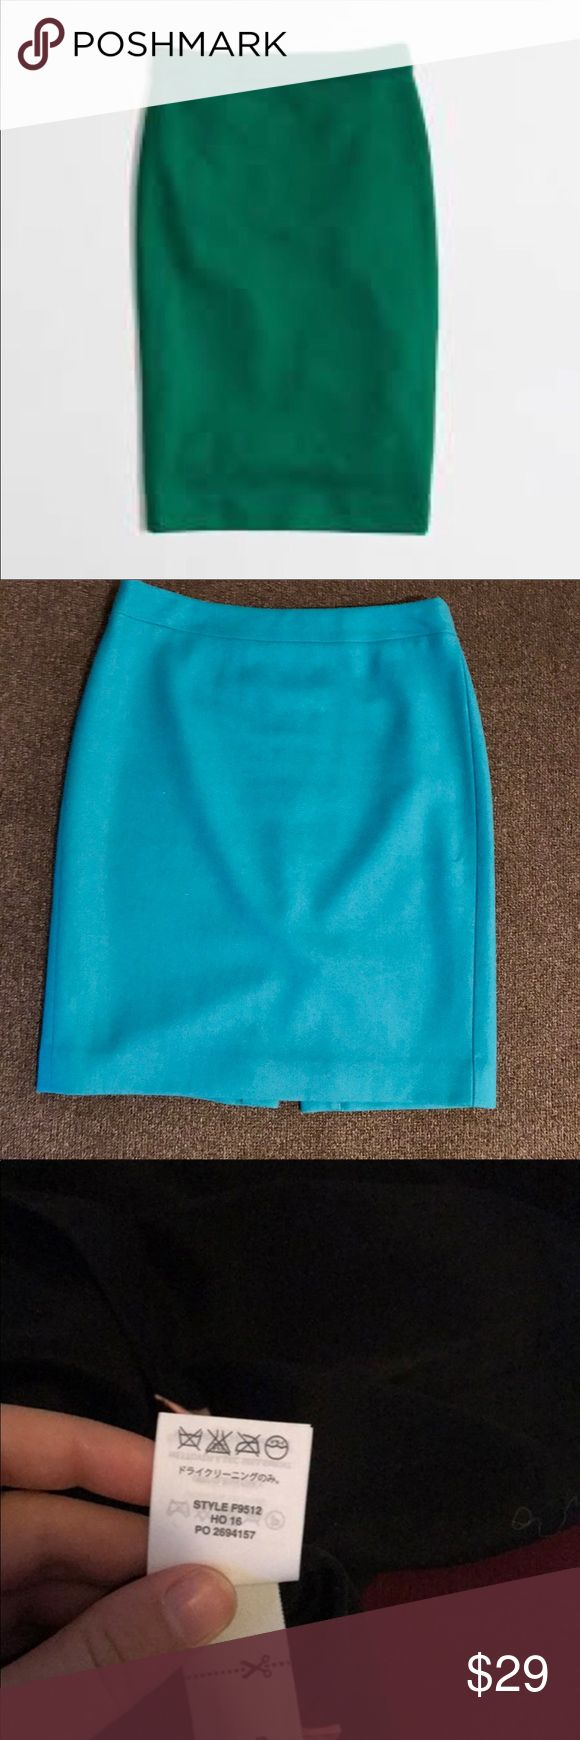 J. Crew Factory wool blend pencil skirt Like new condition, worn twice by me. Measures 15 inches flat across waist and 21 inches long. Slit in back and zips in back. Fully lined. Stock pic (first pic) is best representation of color, it's a beautiful emerald green. J. Crew Factory Skirts Pencil